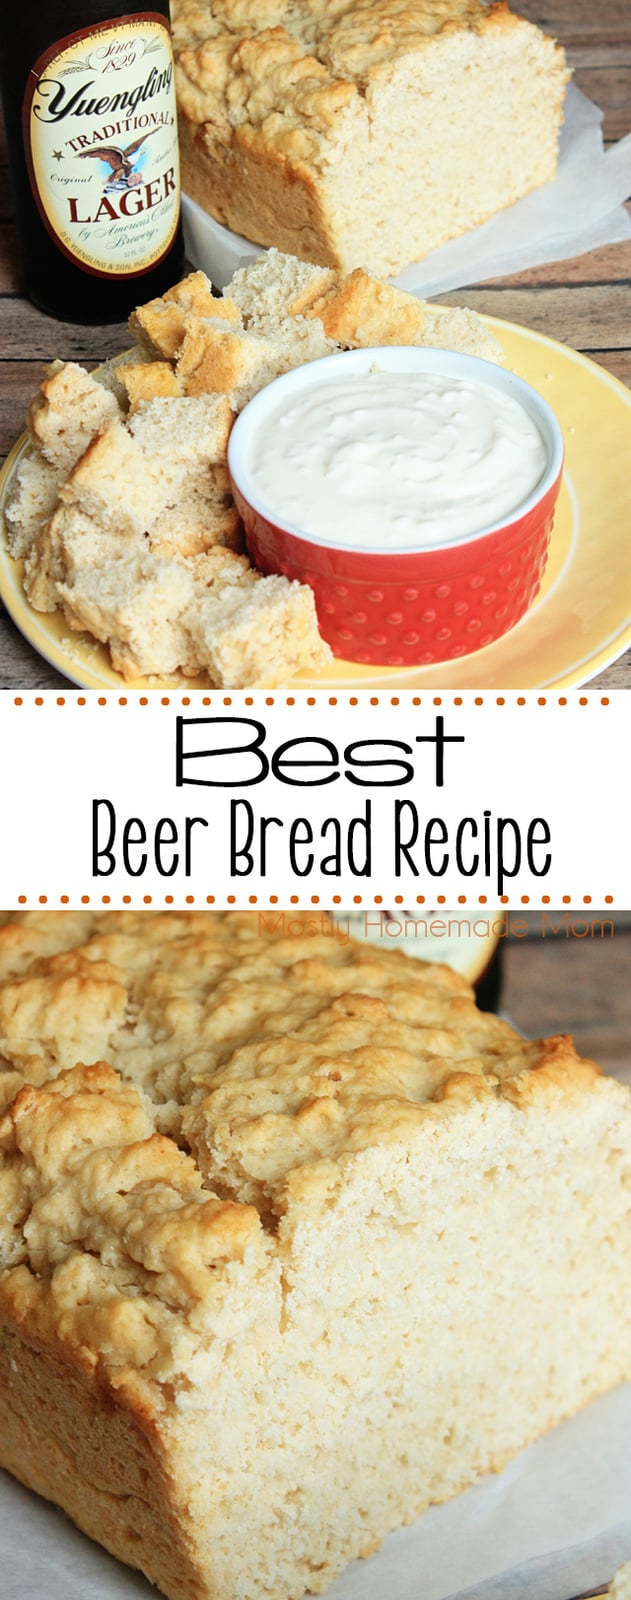 Beer Bread Recipe - just flour, sugar, beer, and melted butter - goes perfect with a simple garlic or onion dip! Great for your next party appetizer! #beerbread #appetizer #recipe #gameday